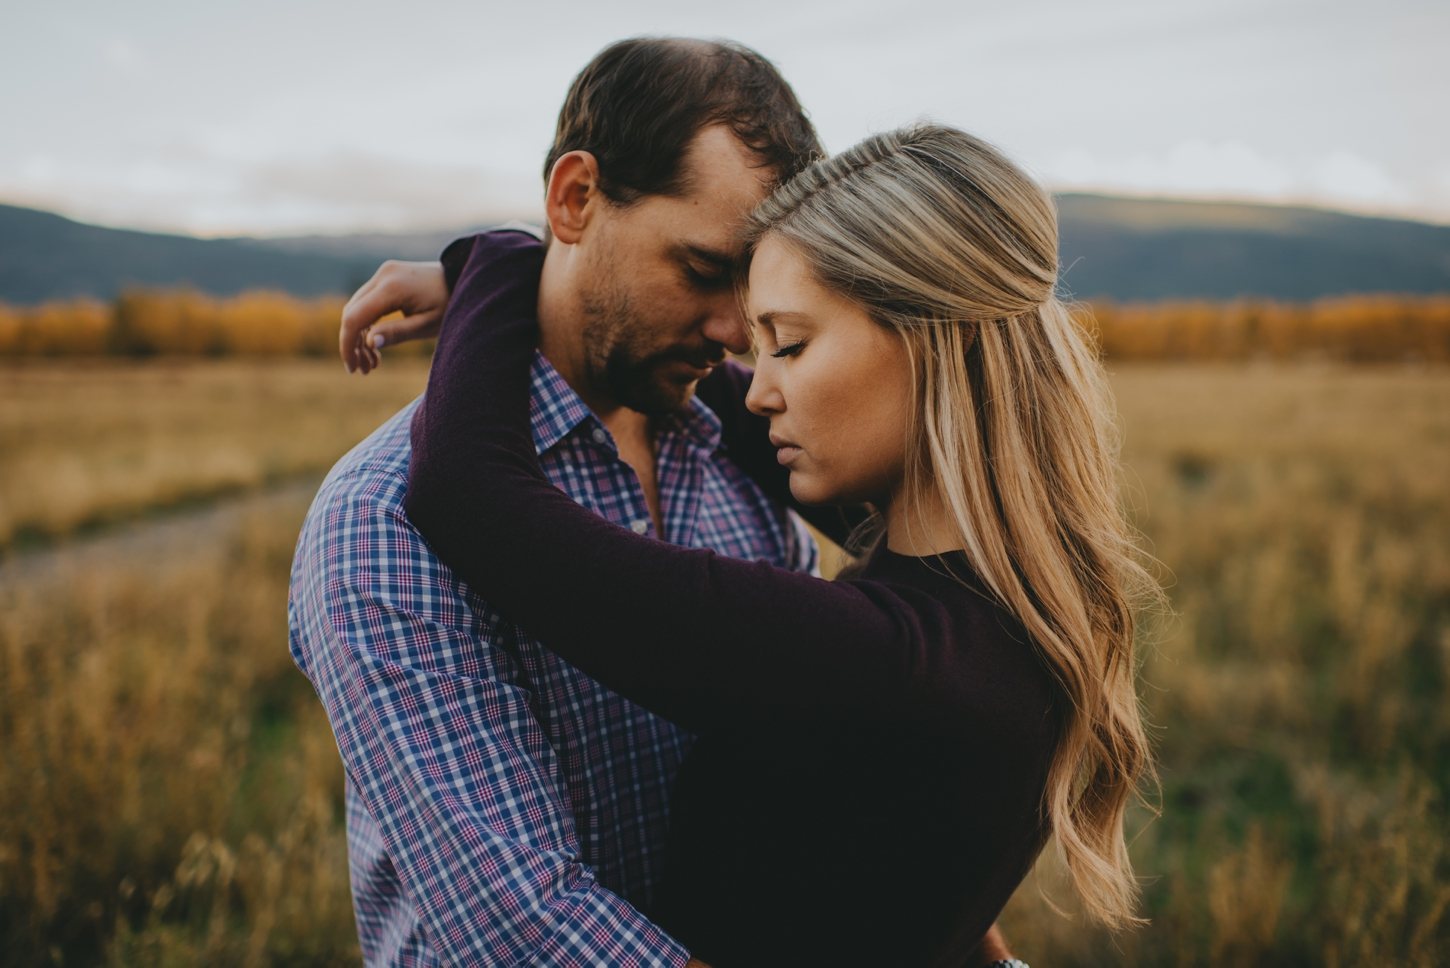 kelowna single women Join the largest christian dating site sign up for free and connect with other christian singles looking for love based on faith.